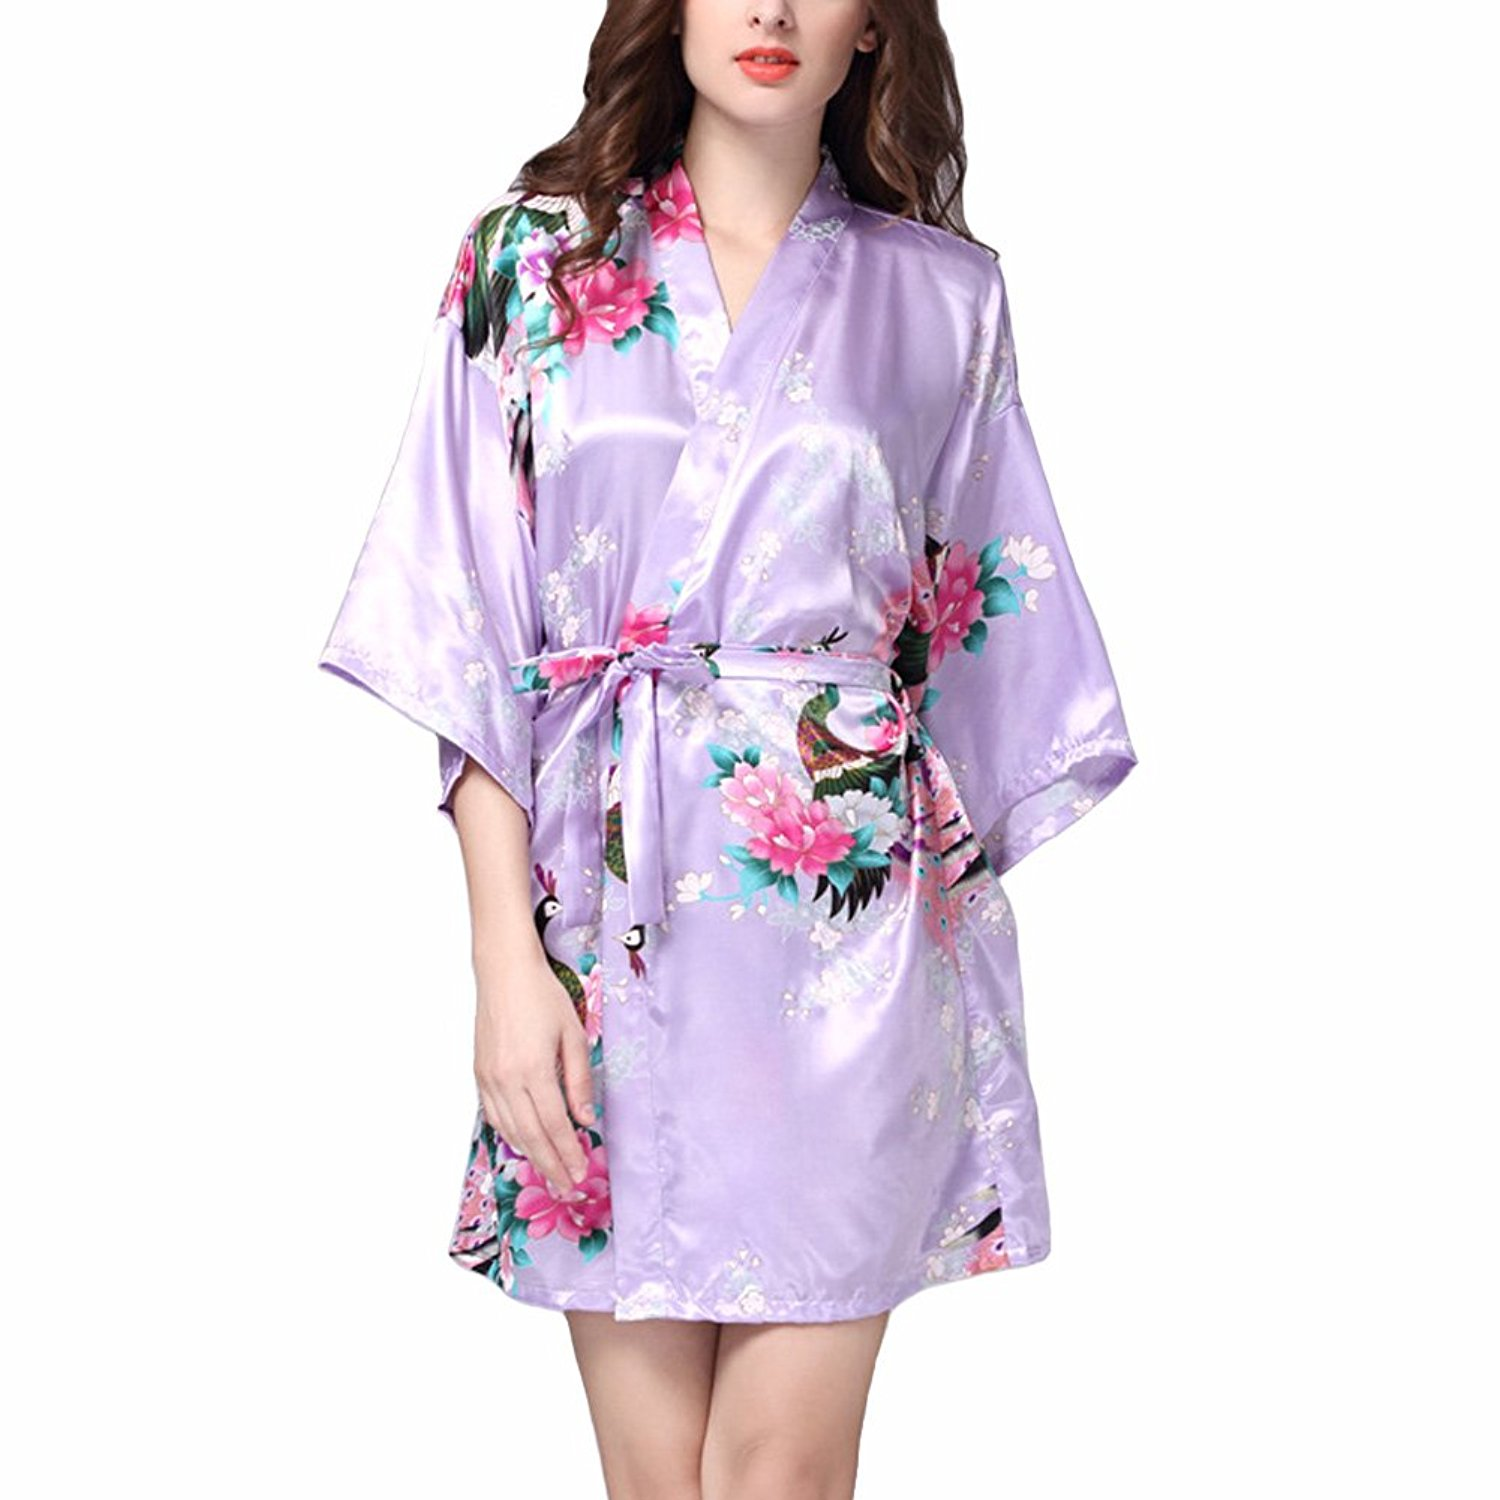 f5737438292 Get Quotations · SUITEASY Women Satin Nightwear Printing Peacock Kimono  Robe Bridal Robe